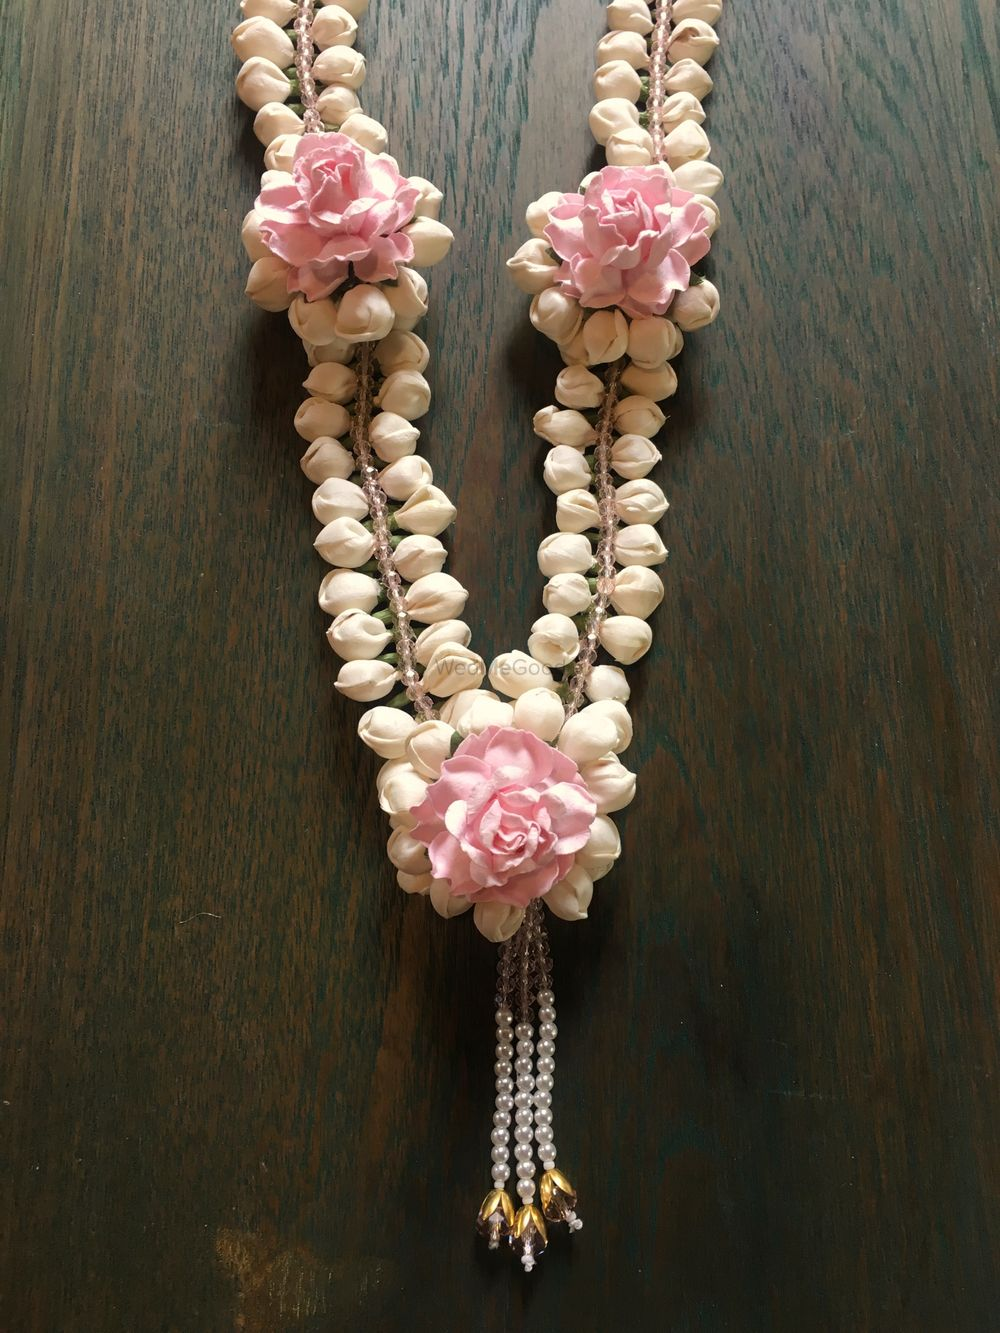 Photo From Floral necklaces - By Ami Mane Handcrafted Jewellery